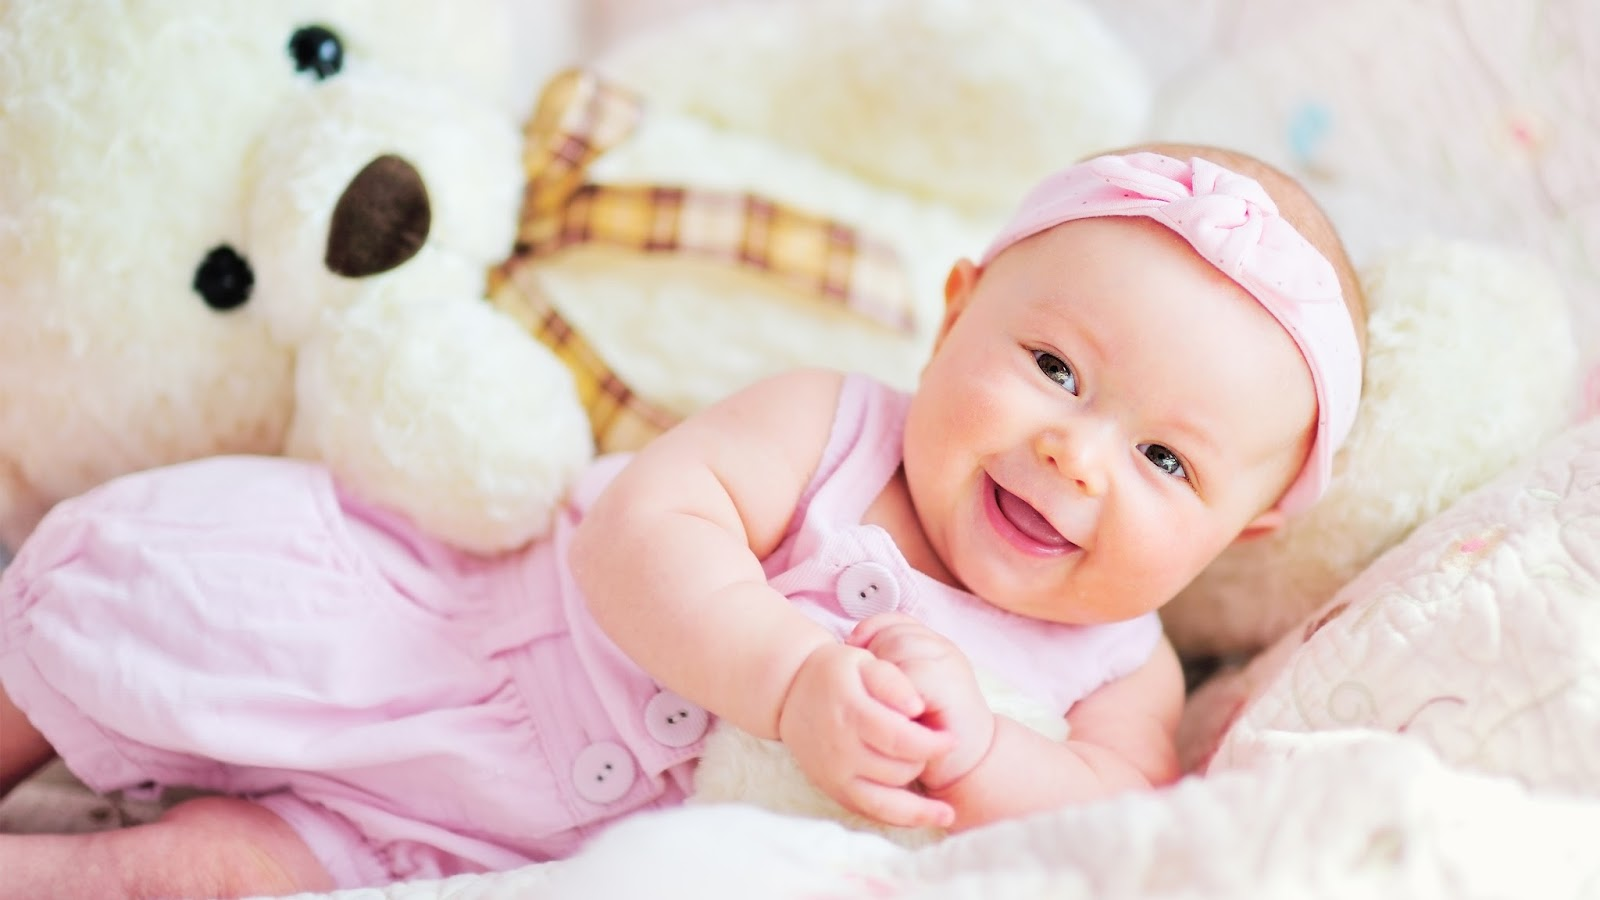 30 very cute babies pictures - babylove tv